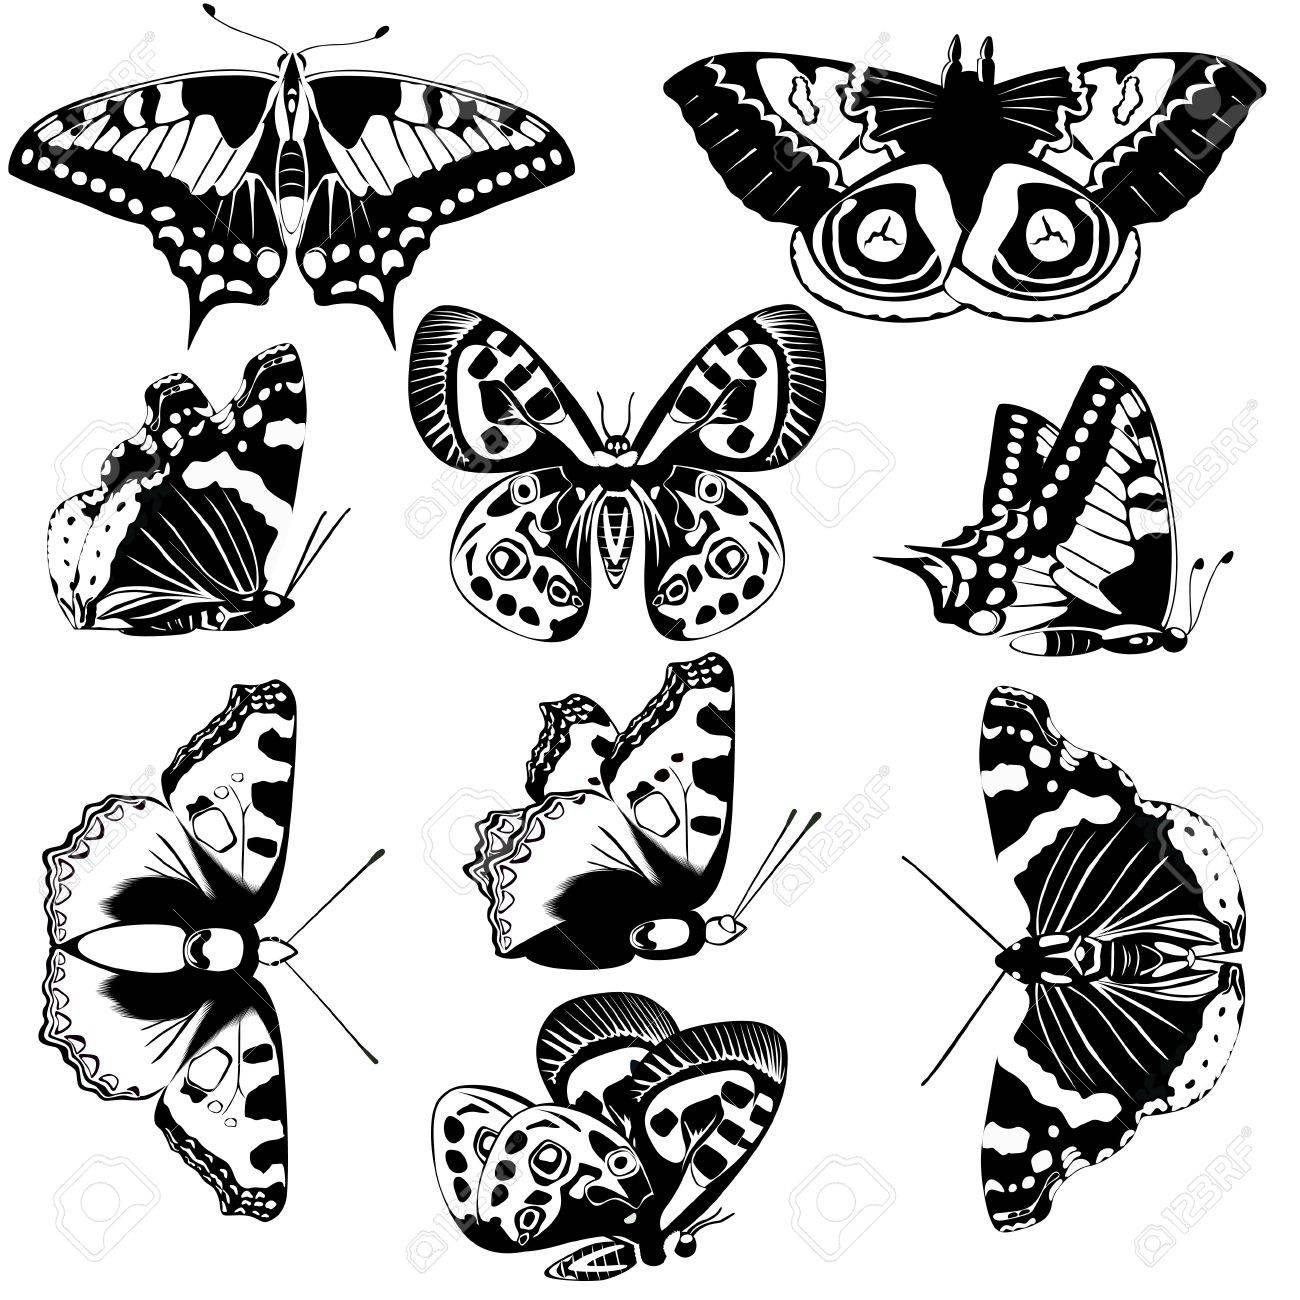 The contours of butterflies  Black and white illustration Stock Vector - 14523689